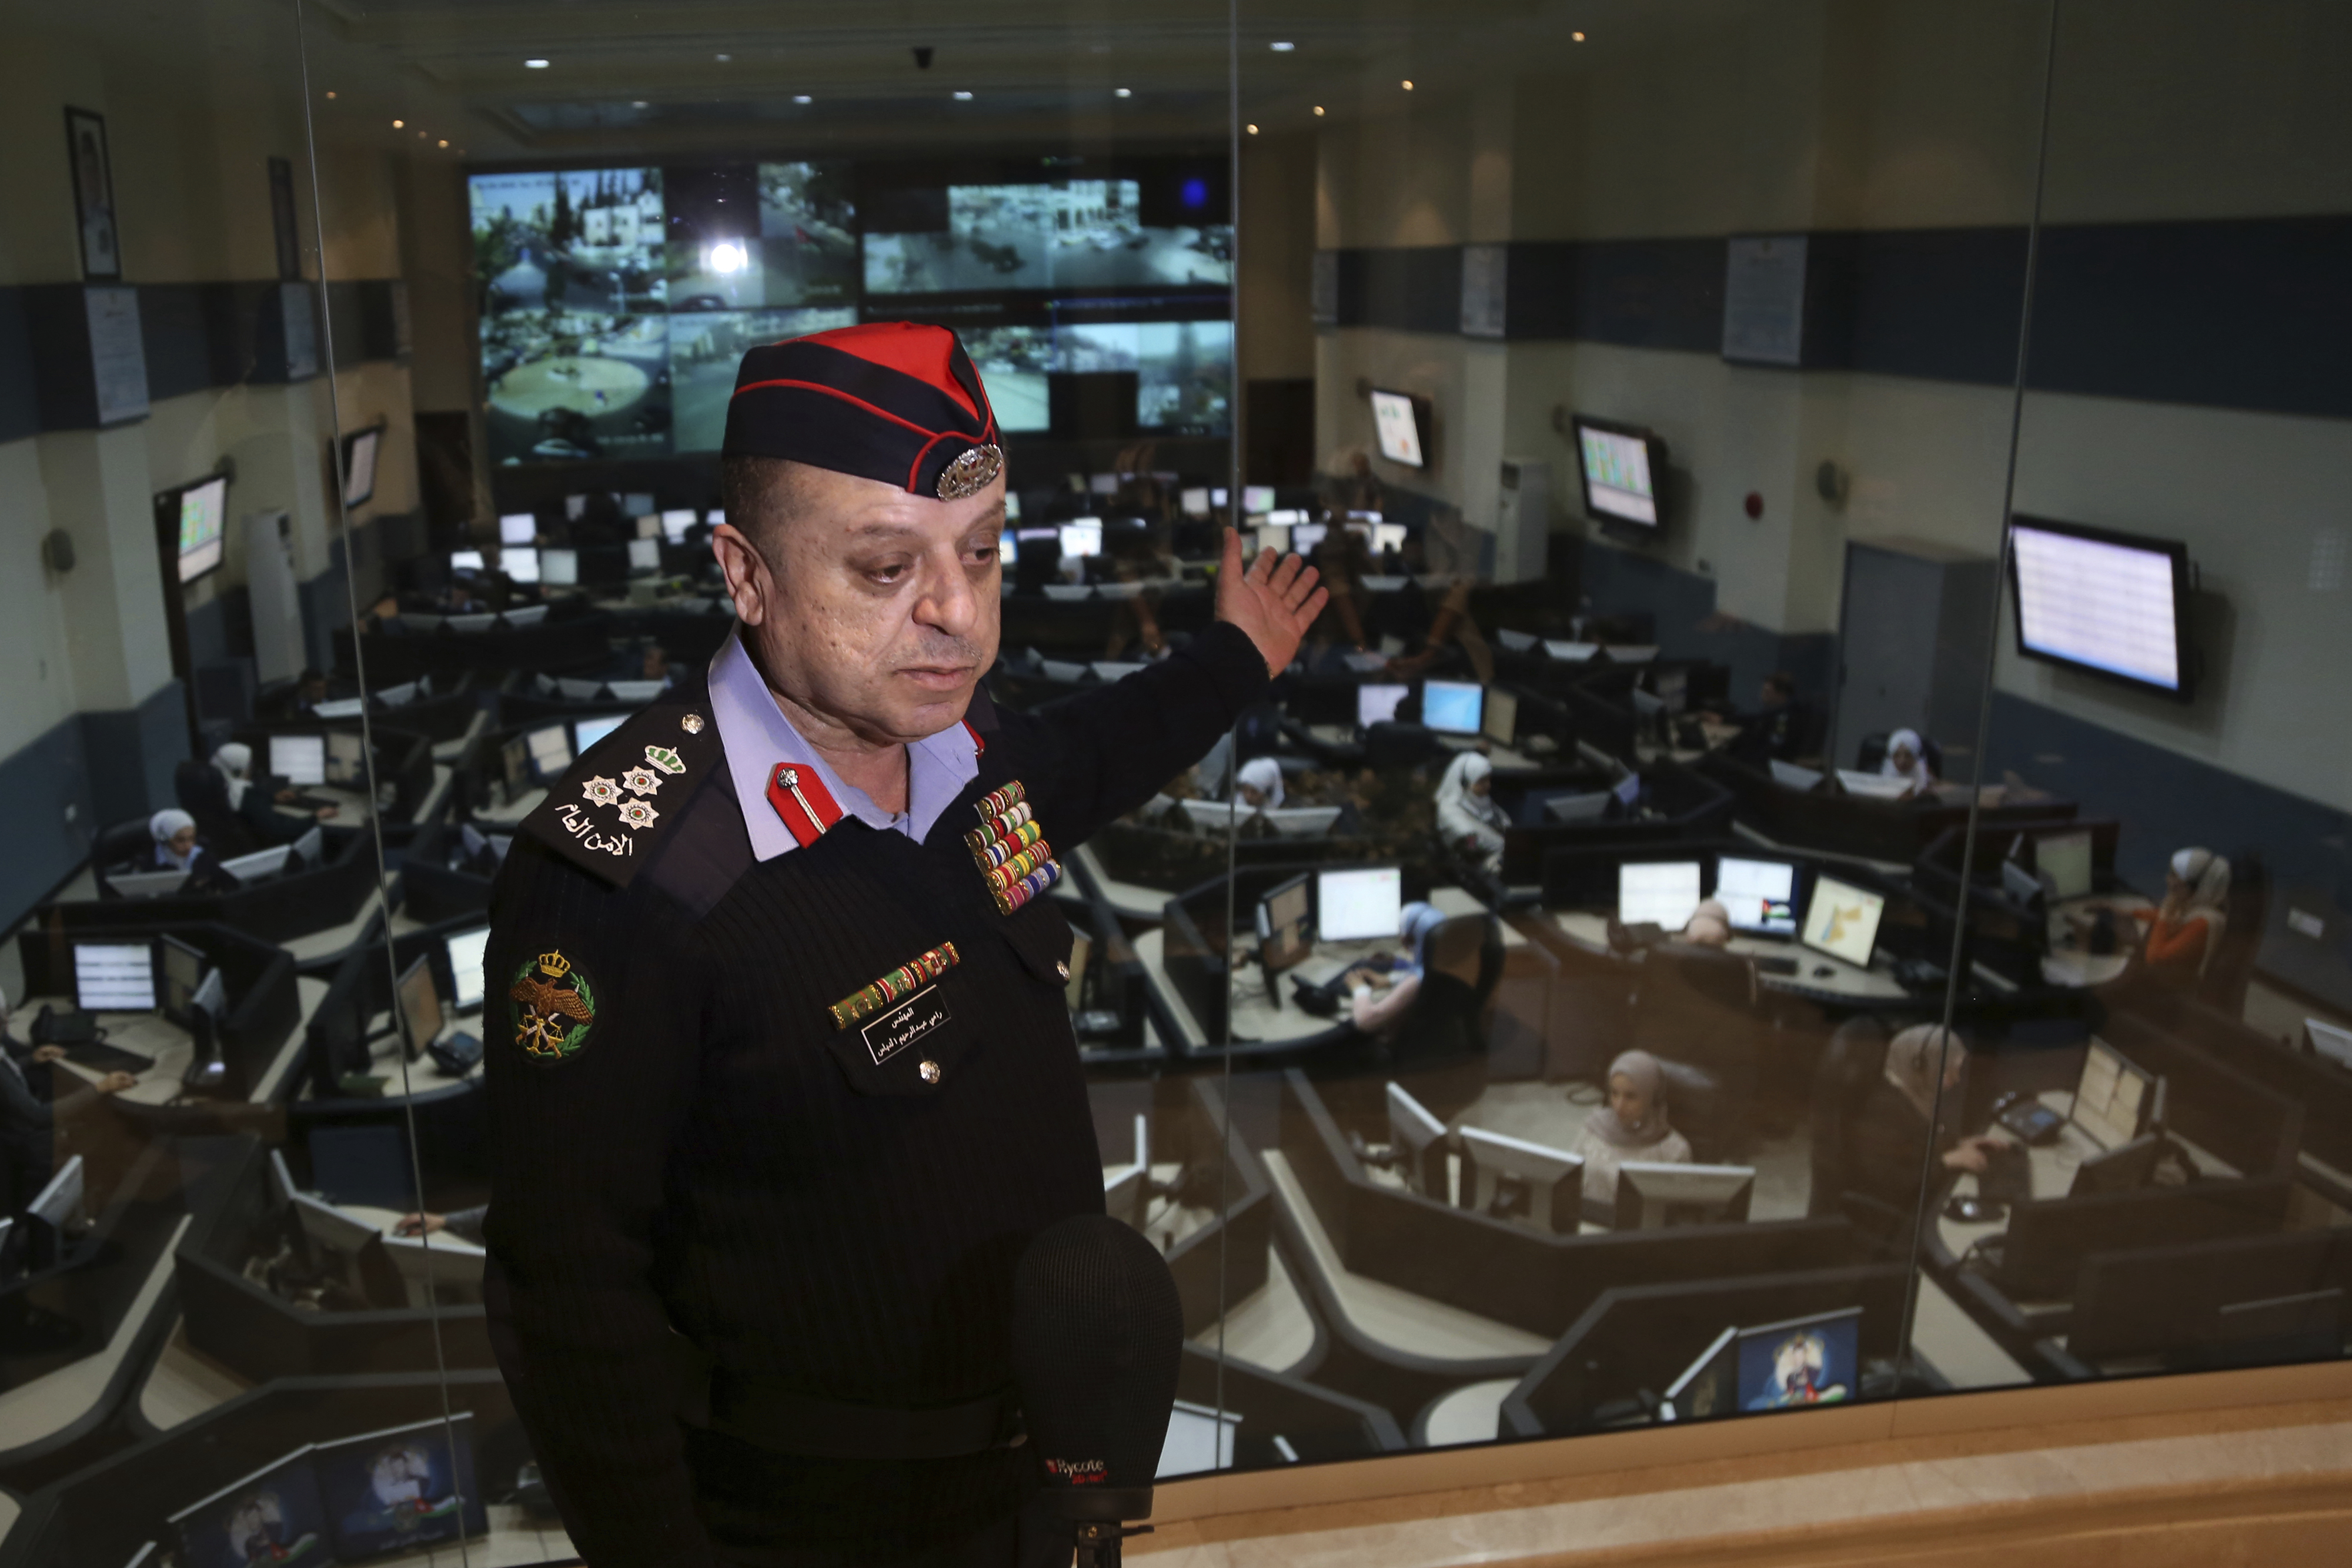 Brig. Rami al-Dabbas, the head of Jordan's Command and Control Center, explains the operations of the national 911 emergency call center, which receives thousands of calls a day, in Amman, Jordan. (Raad Adayleh/AP)